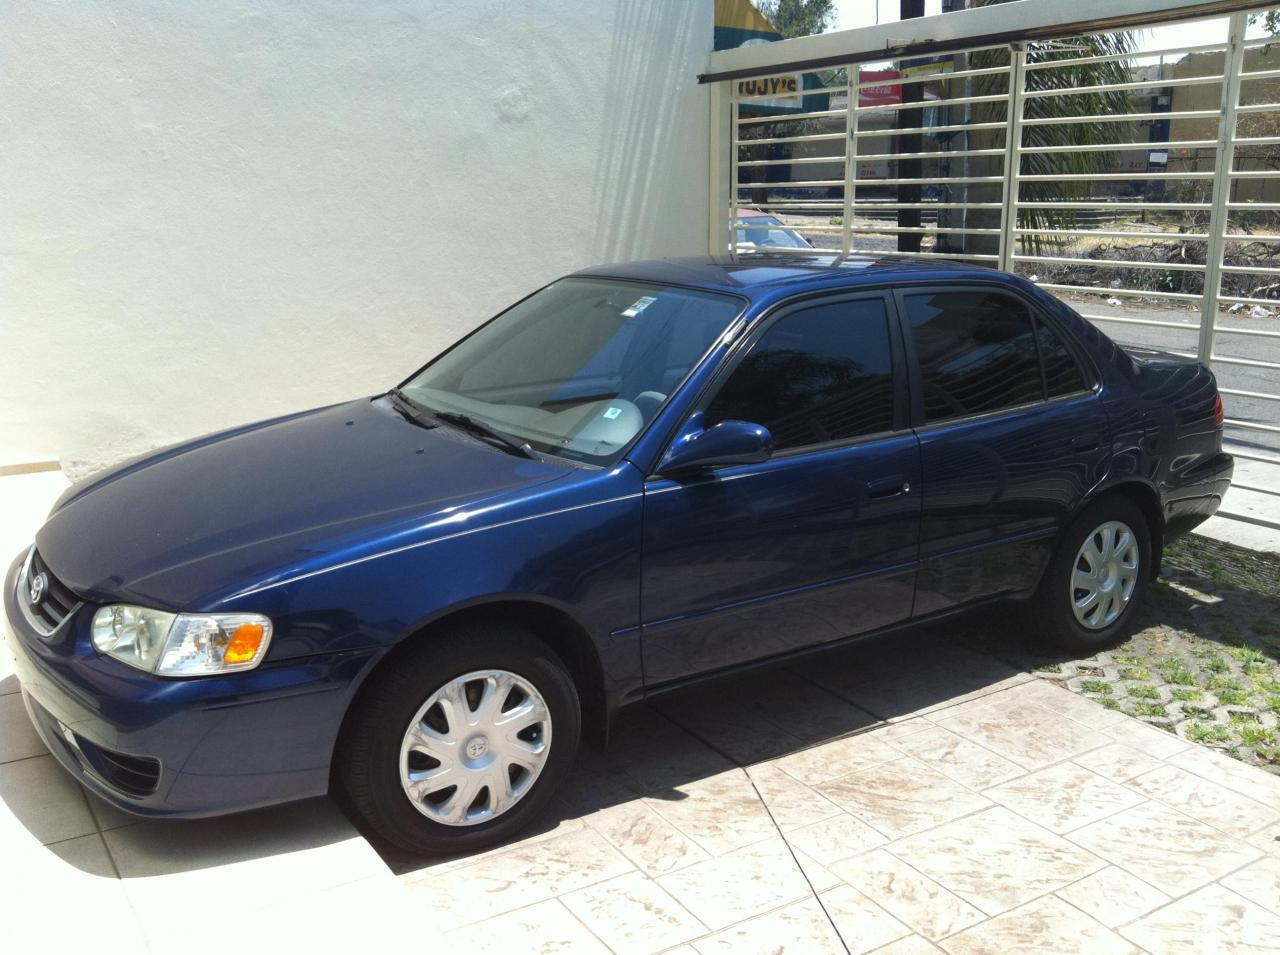 2002 Toyota Corolla Information And Photos Zomb Drive